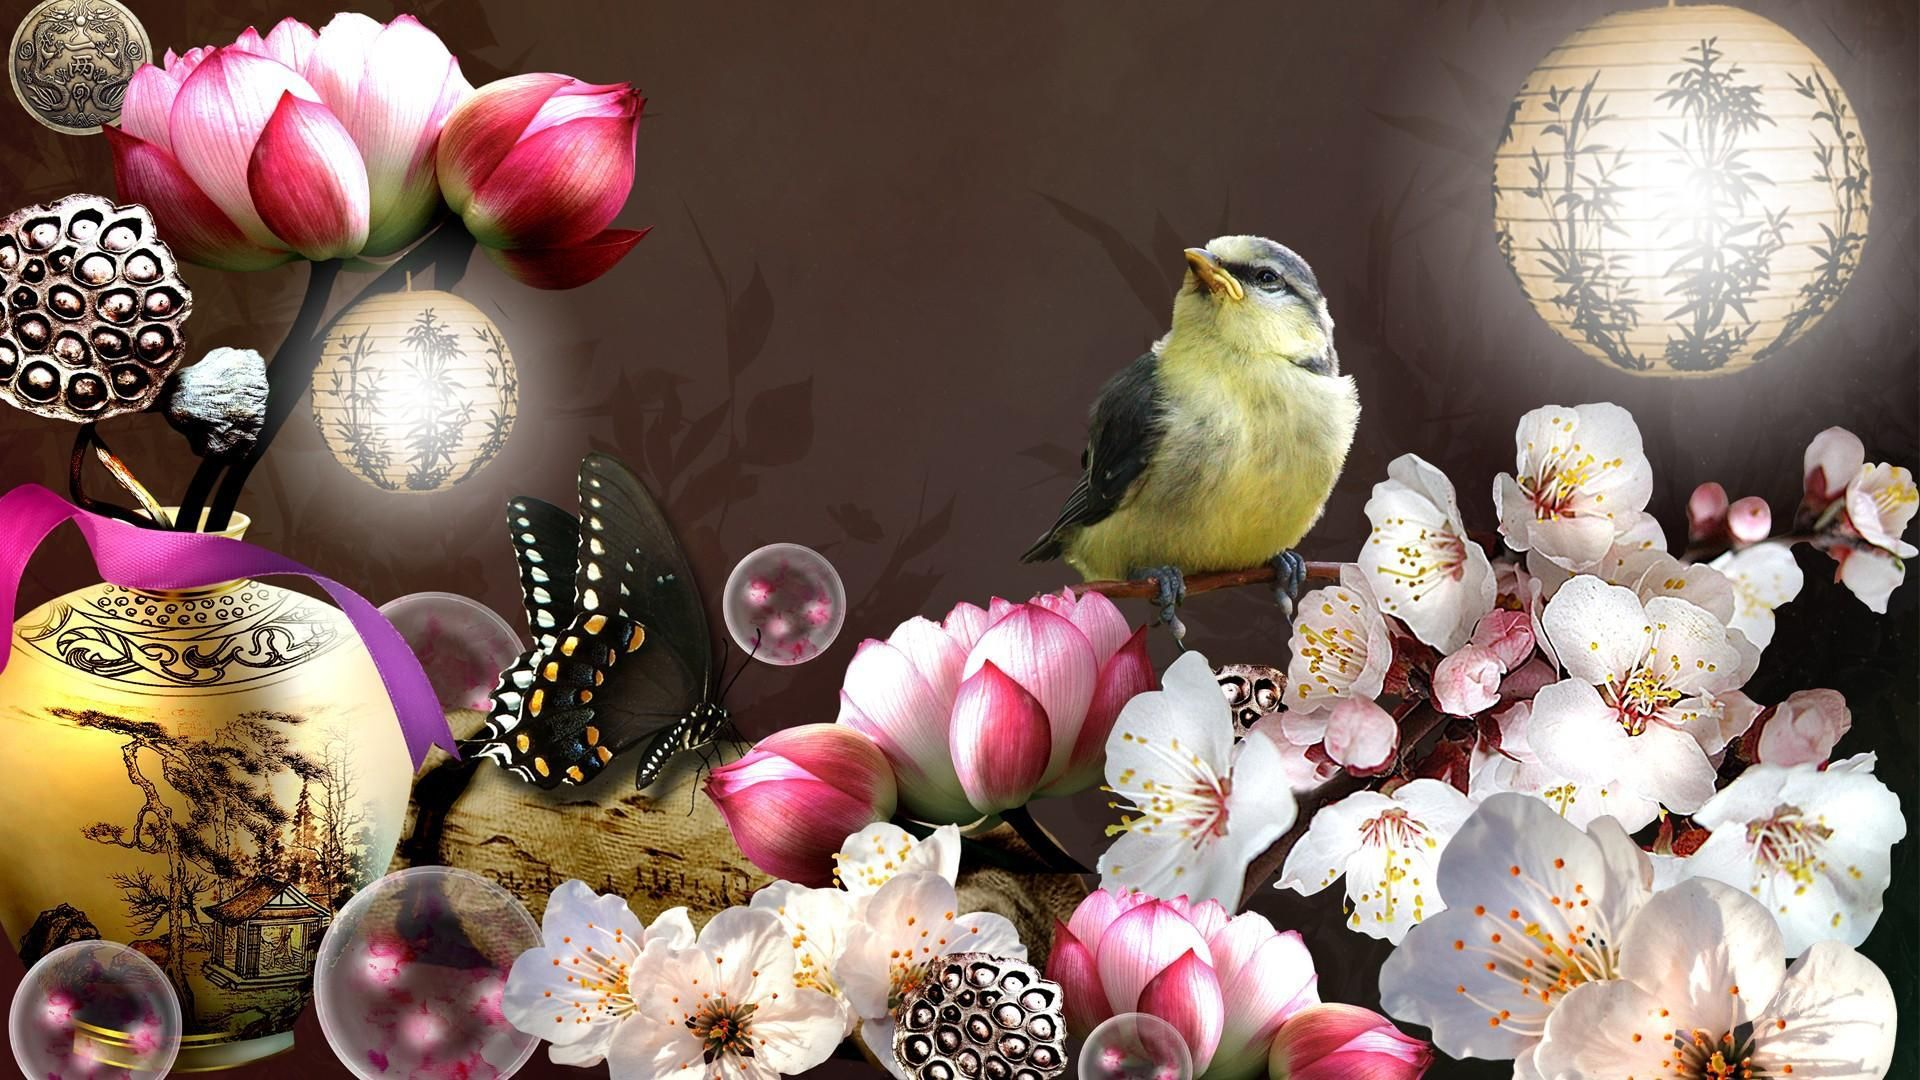 Bird And Butterfly 1920x1080 wallpaper